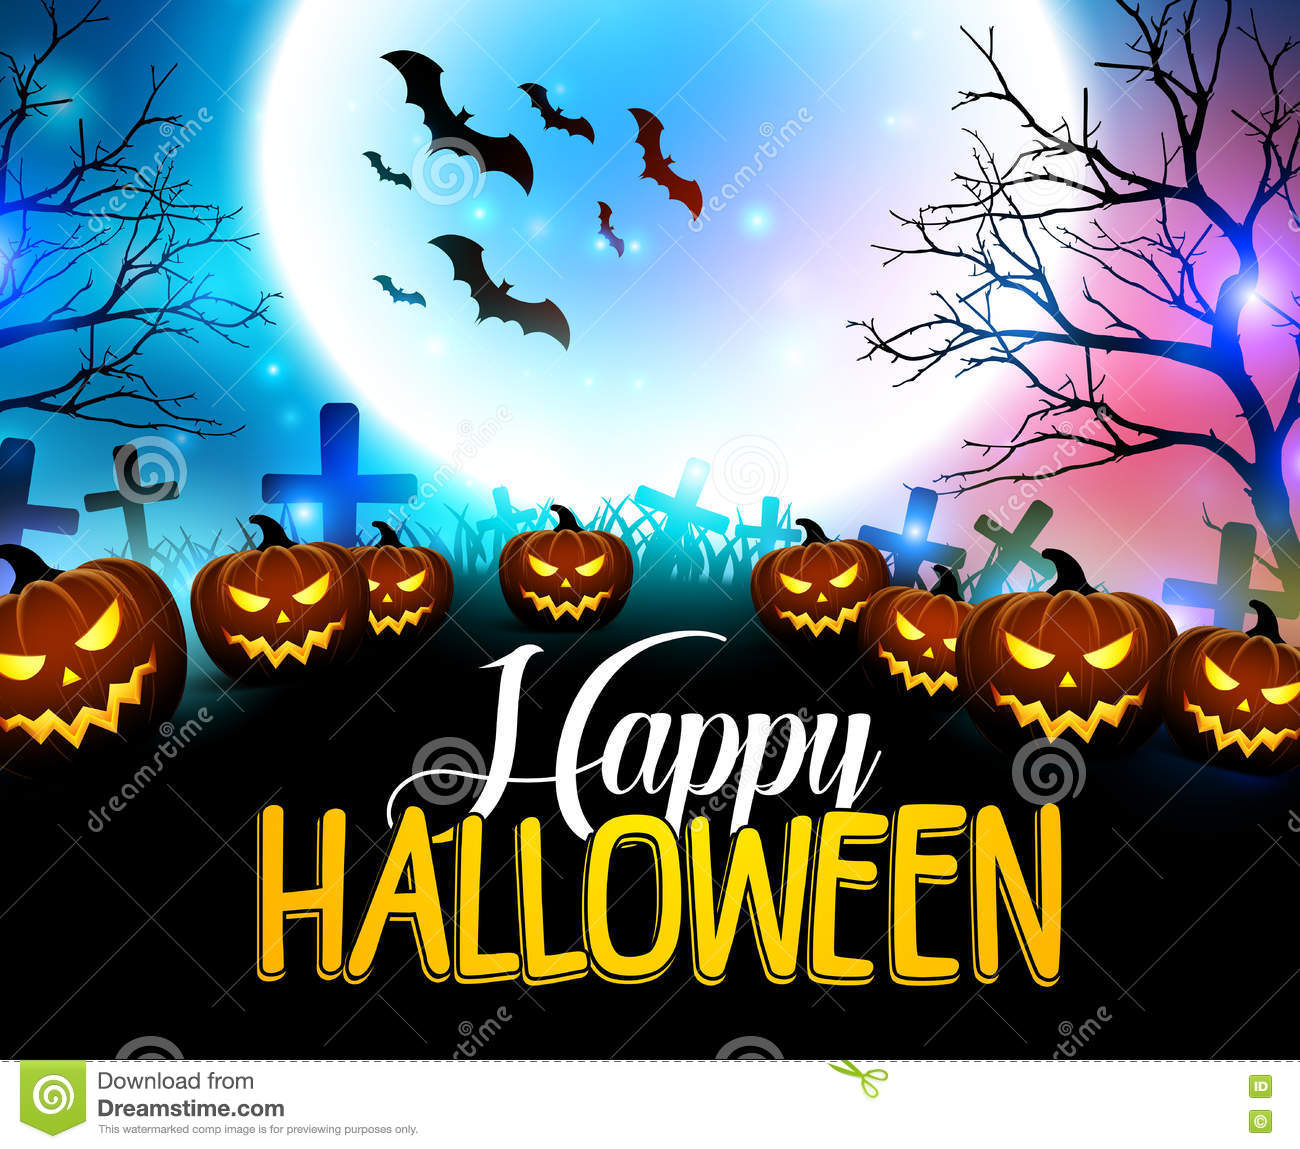 Halloween Achtergrond.Happy Halloween Background With Scary Pumpkins In The Graveyard Stock Vector Illustration Of Laughing Blue 78307534